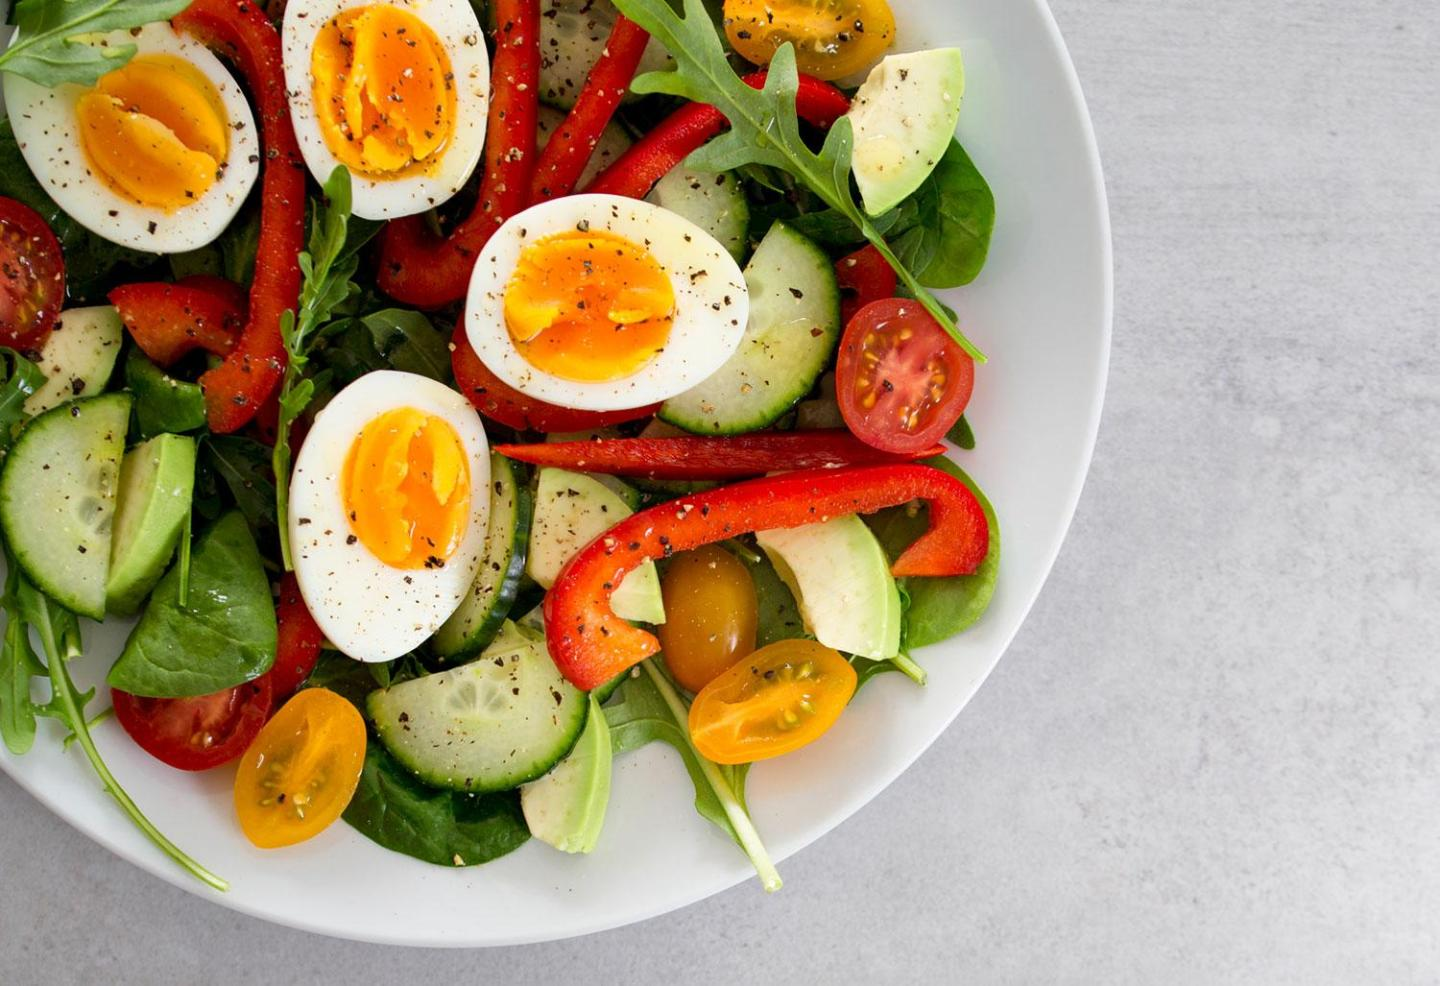 Weight loss with boiled egg diet: Everything you need to know